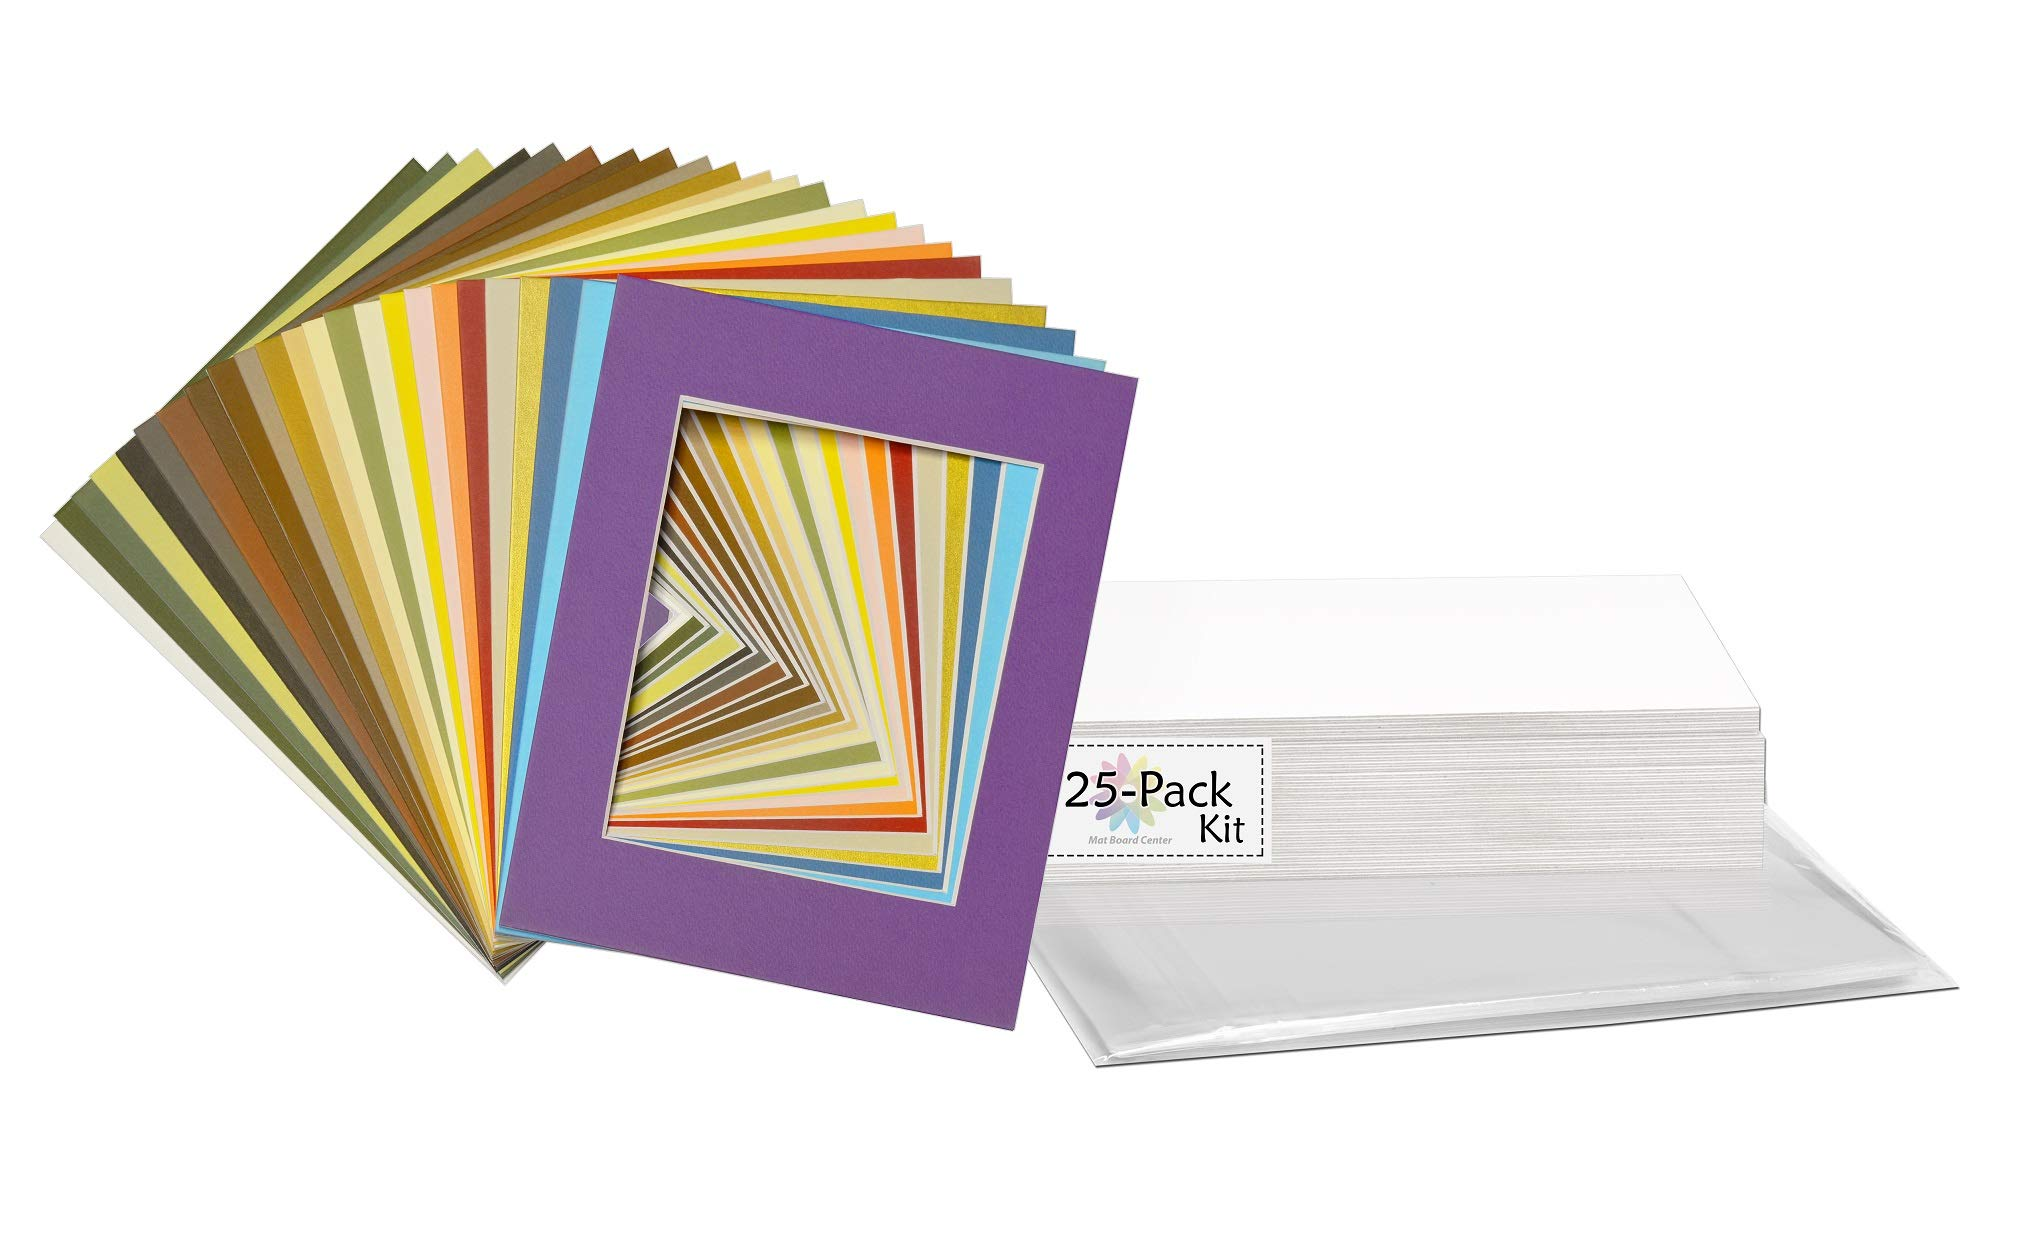 Mat Board Center, 11x14 Picture Mat Sets for 8x10 Photo. Includes a Pack of 25 White Core Bevel Pre-Cut White Core Matte & 25 Backing Board & 25 Clear Bags (Mix) by MBC MAT BOARD CENTER